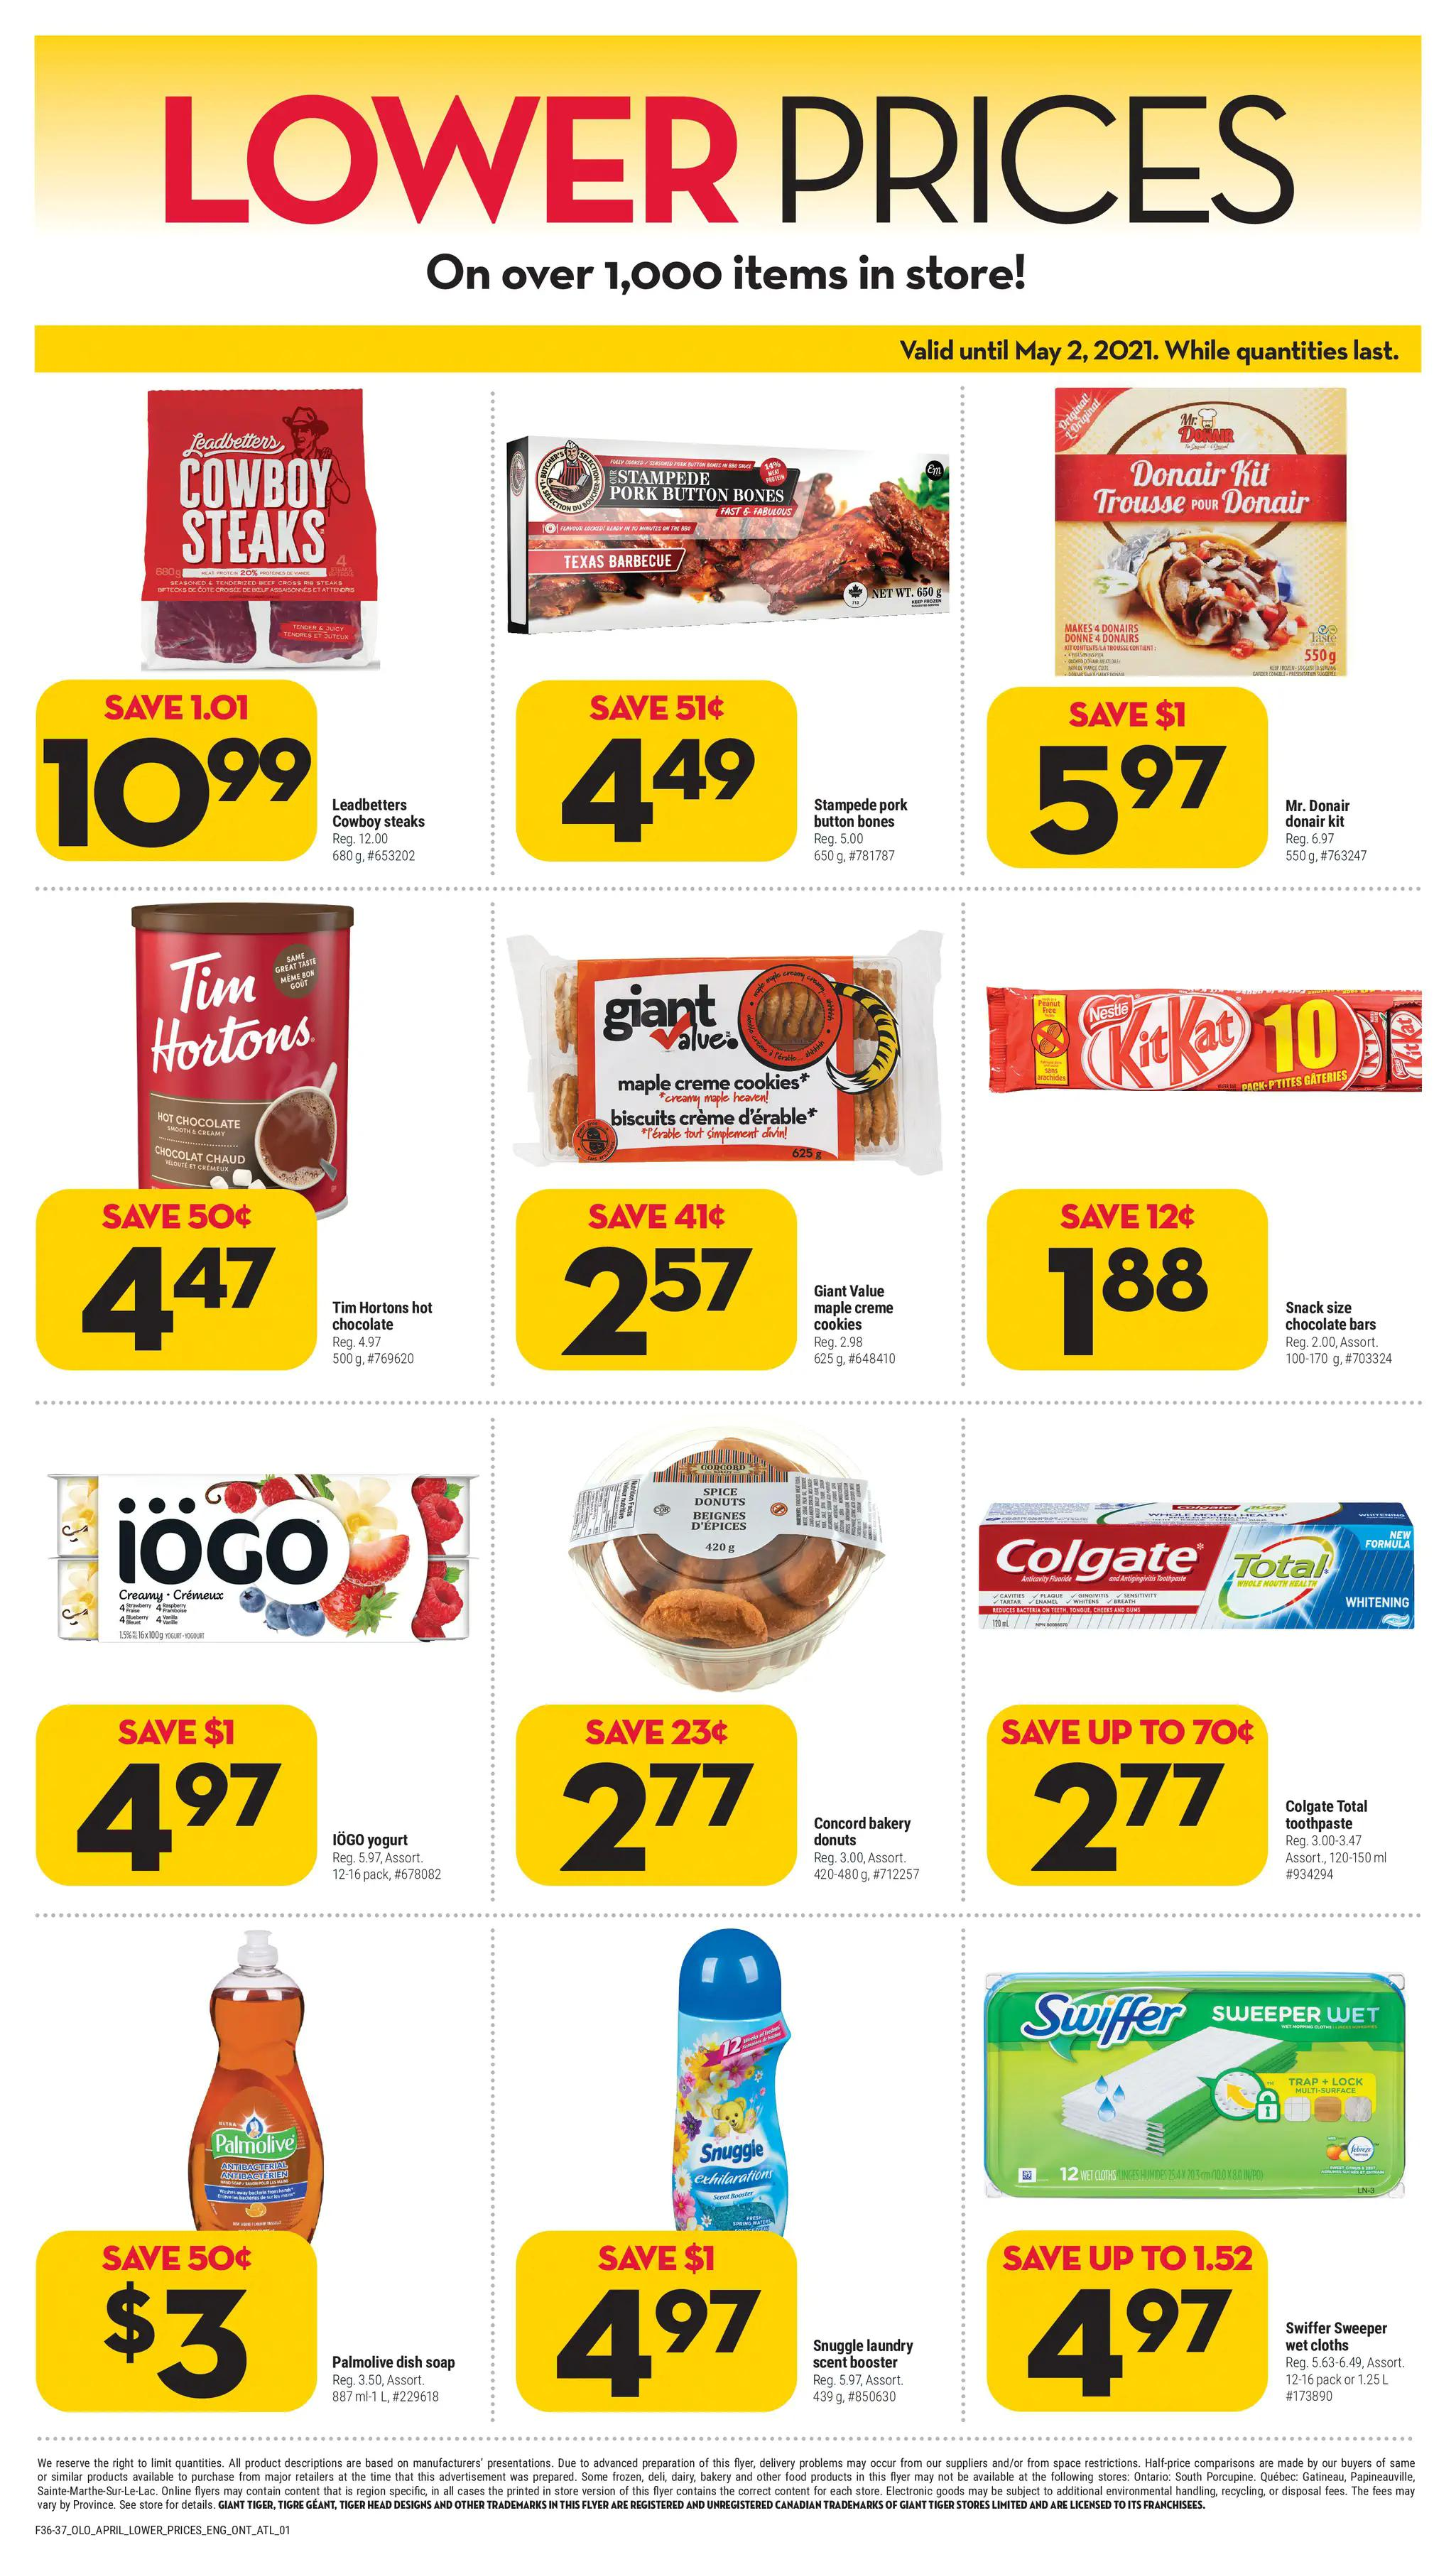 Giant Tiger - Weekly Flyer Specials - Page 5